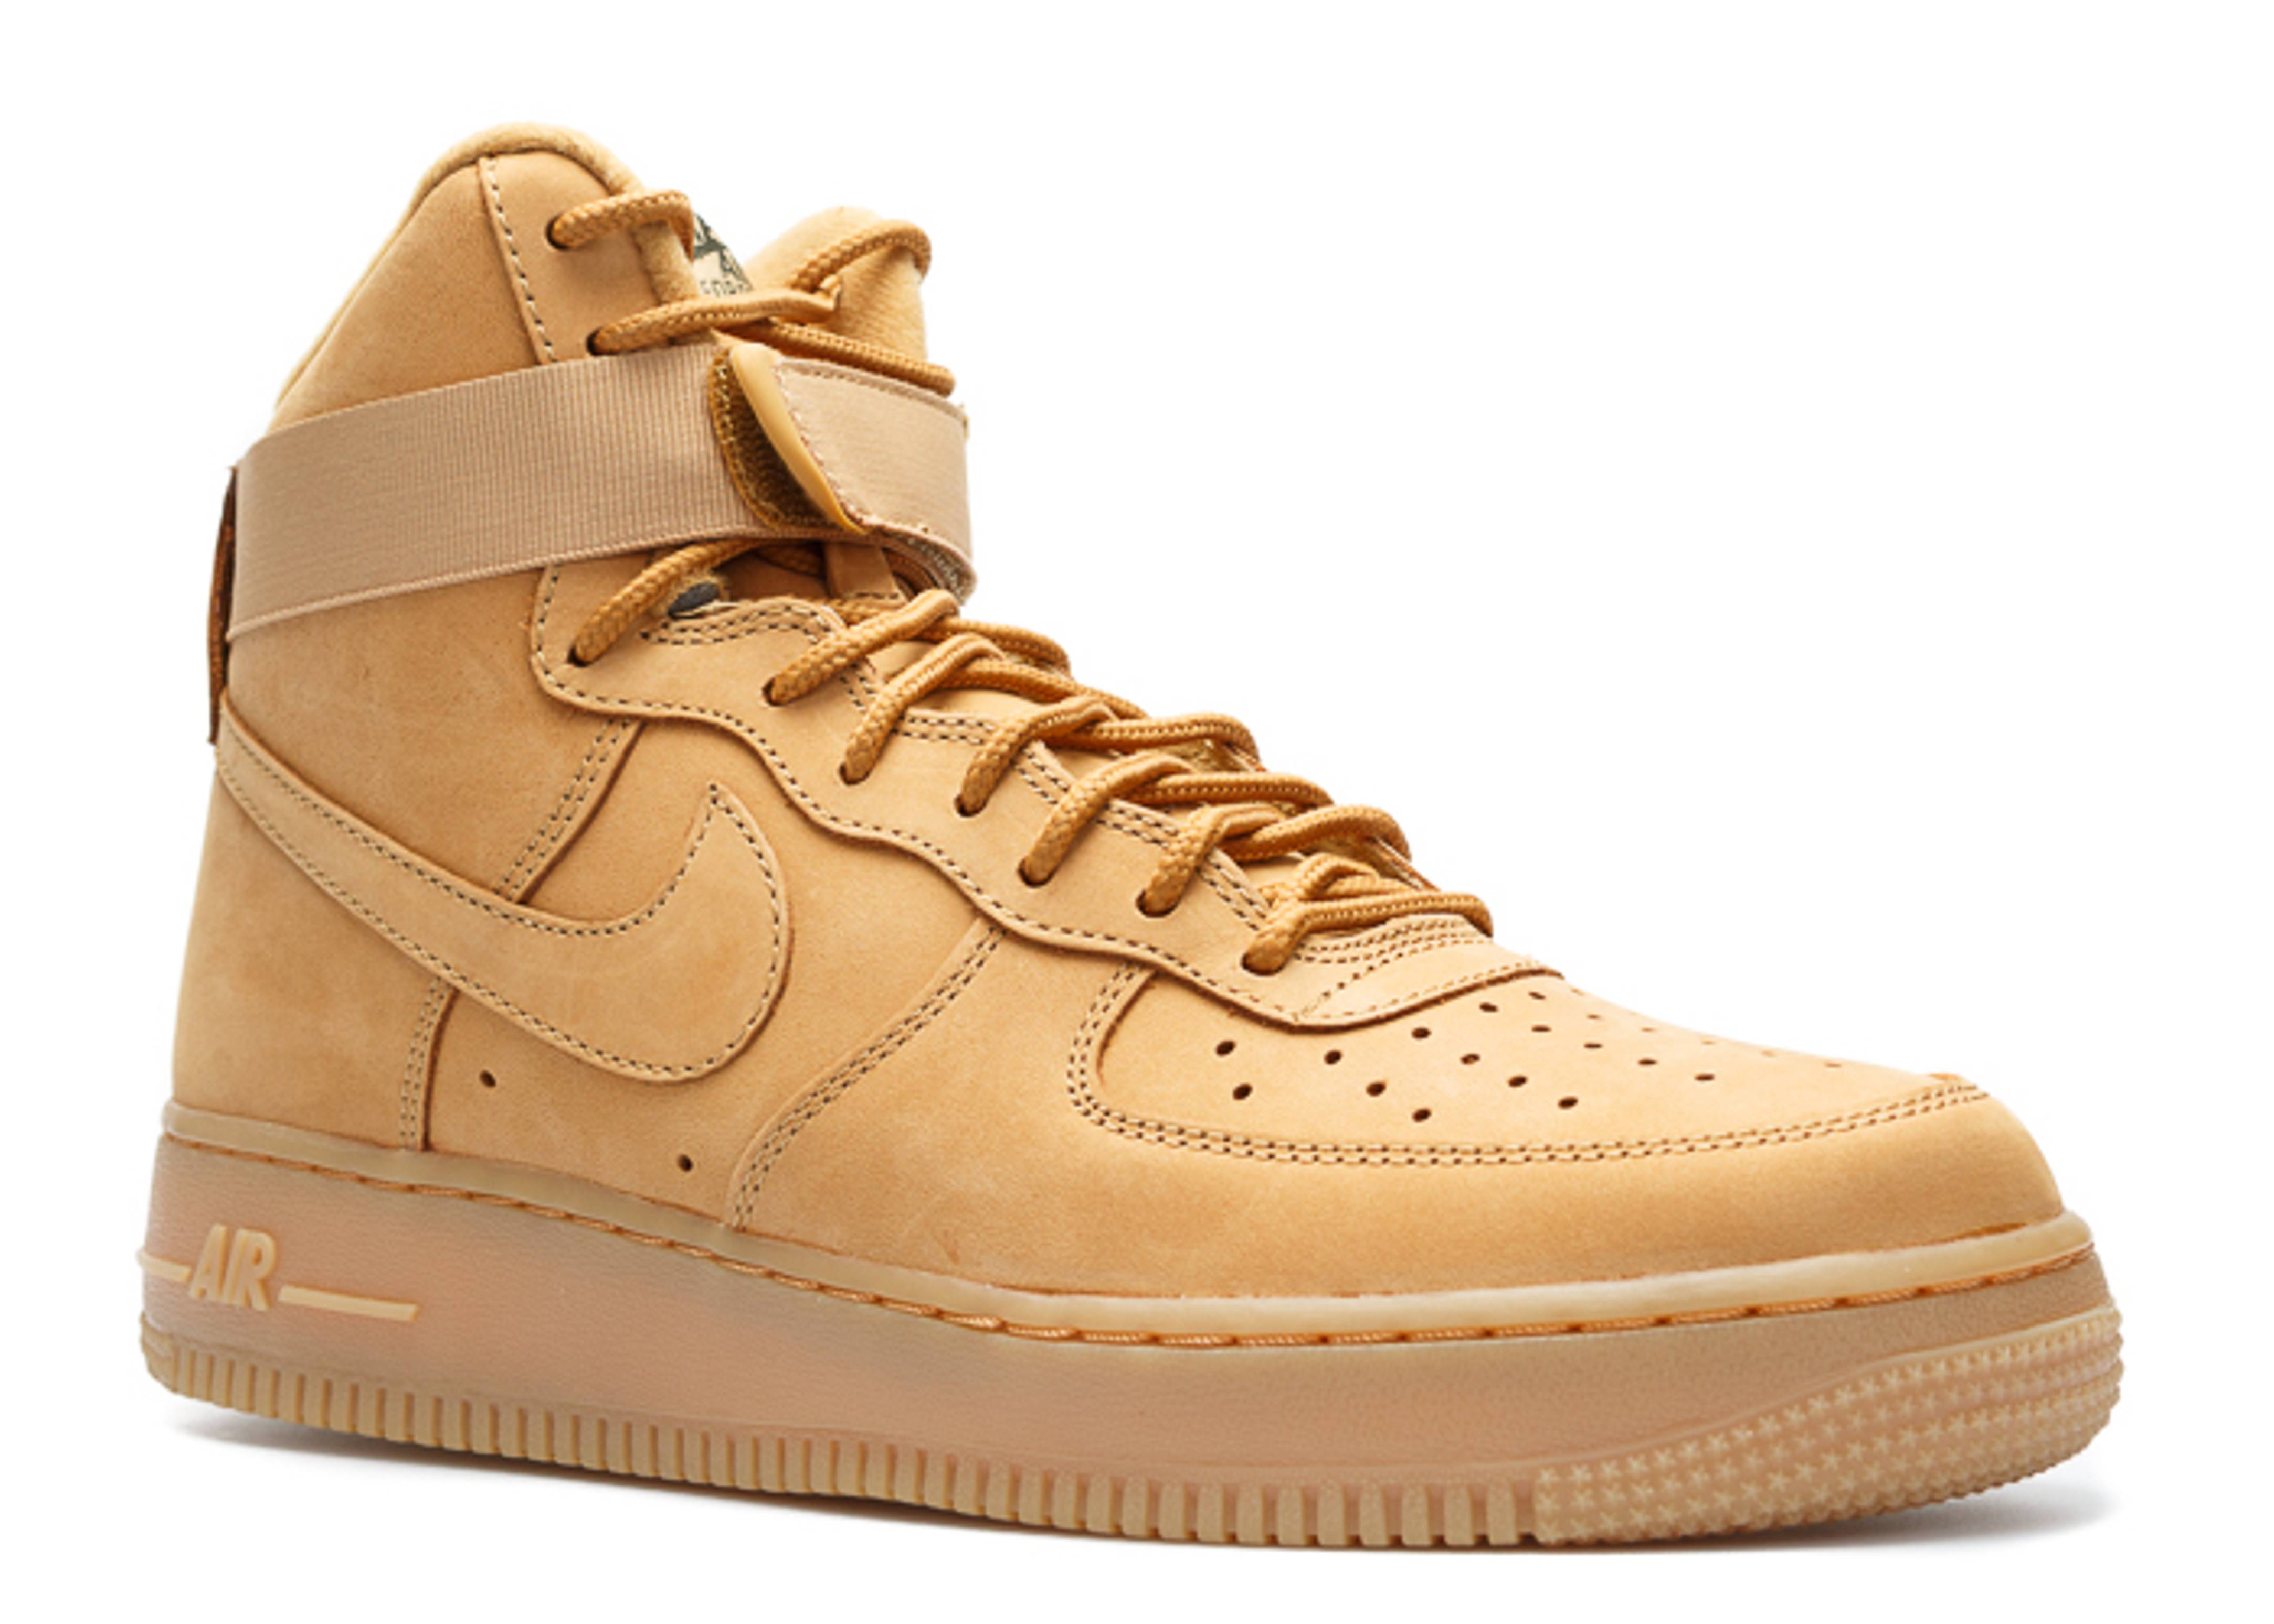 air force 1 high 07 lv8 flax flax flax outdoor green flight club. Black Bedroom Furniture Sets. Home Design Ideas